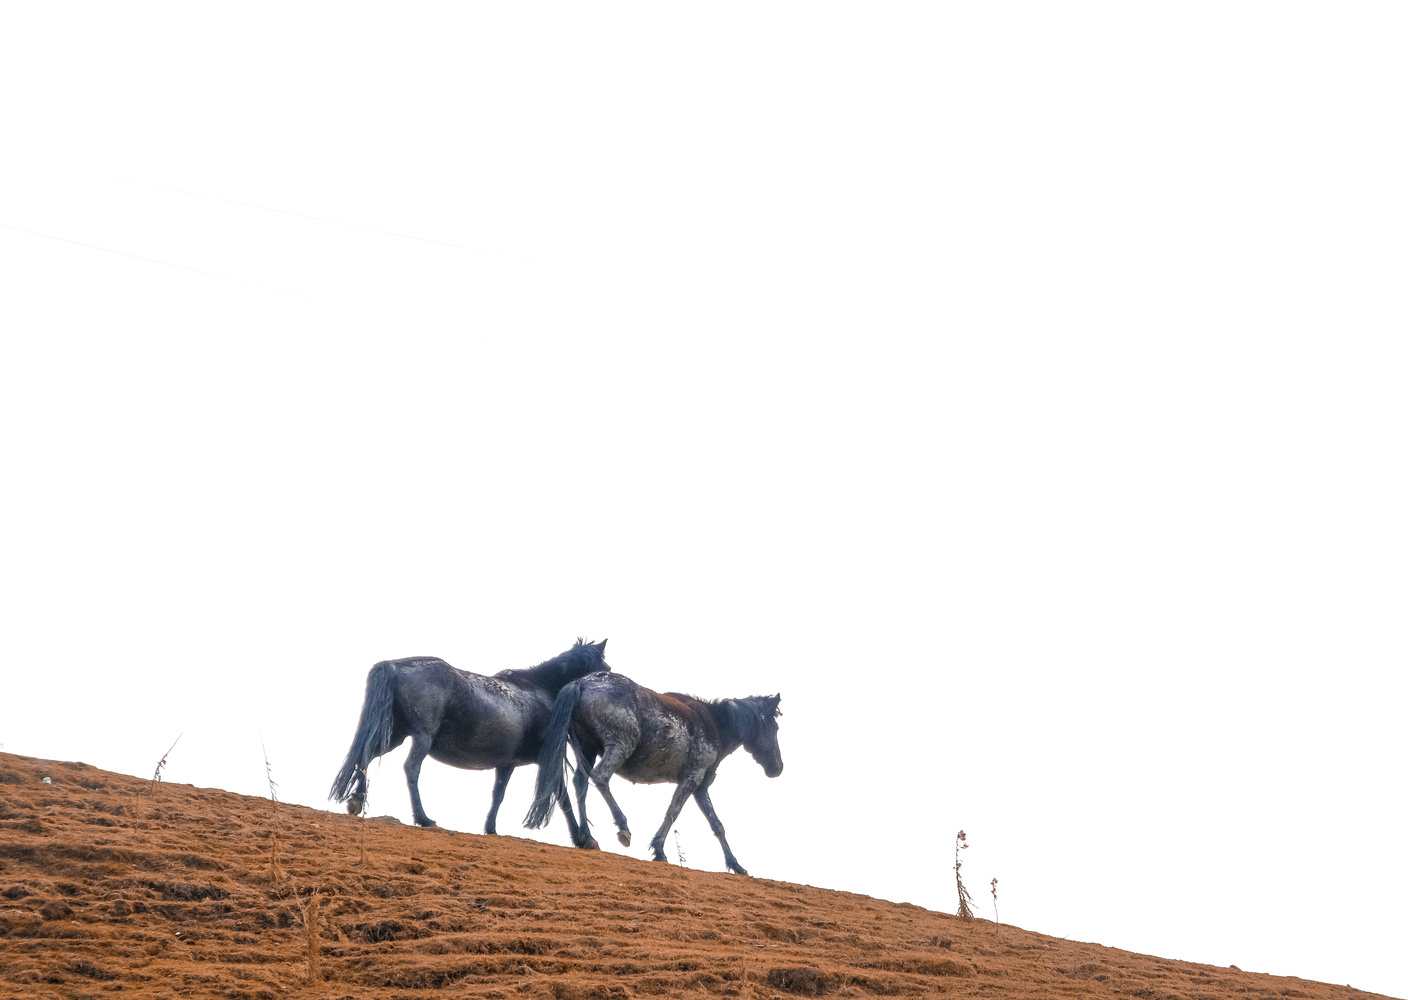 Going down the hill. Are we? by Ashish Ranjan